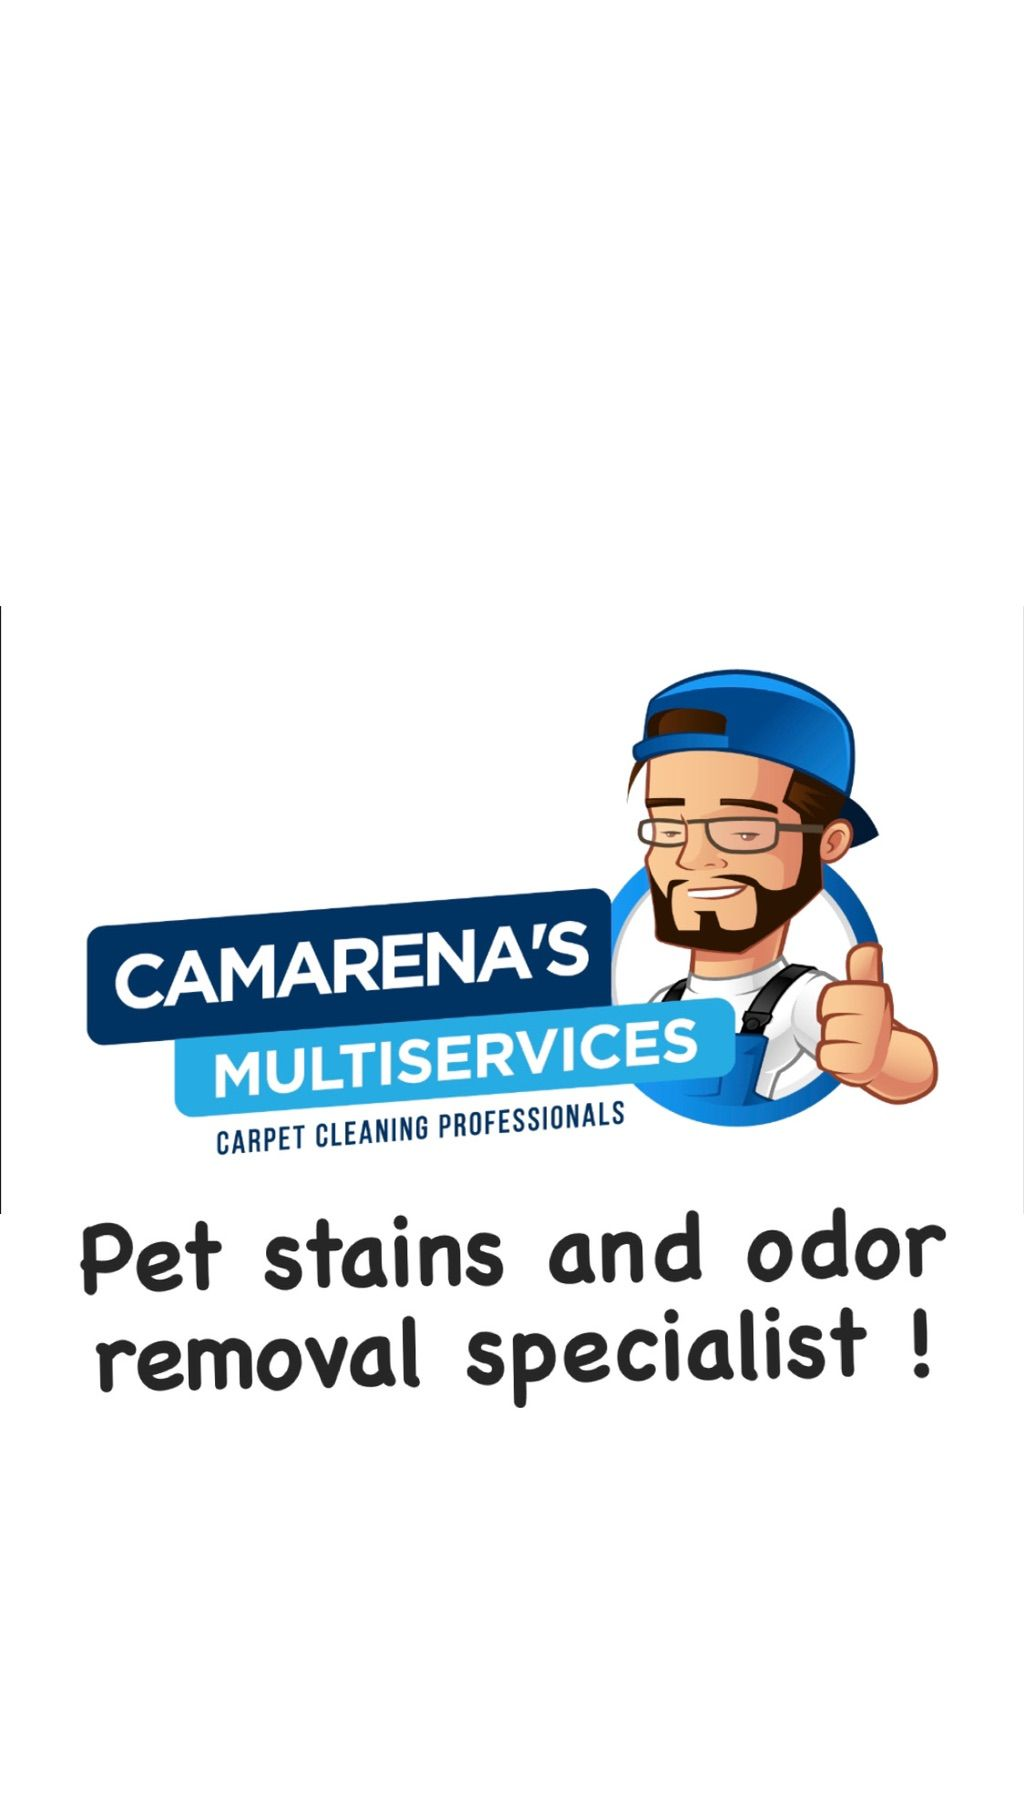 Camarena's Multiservices